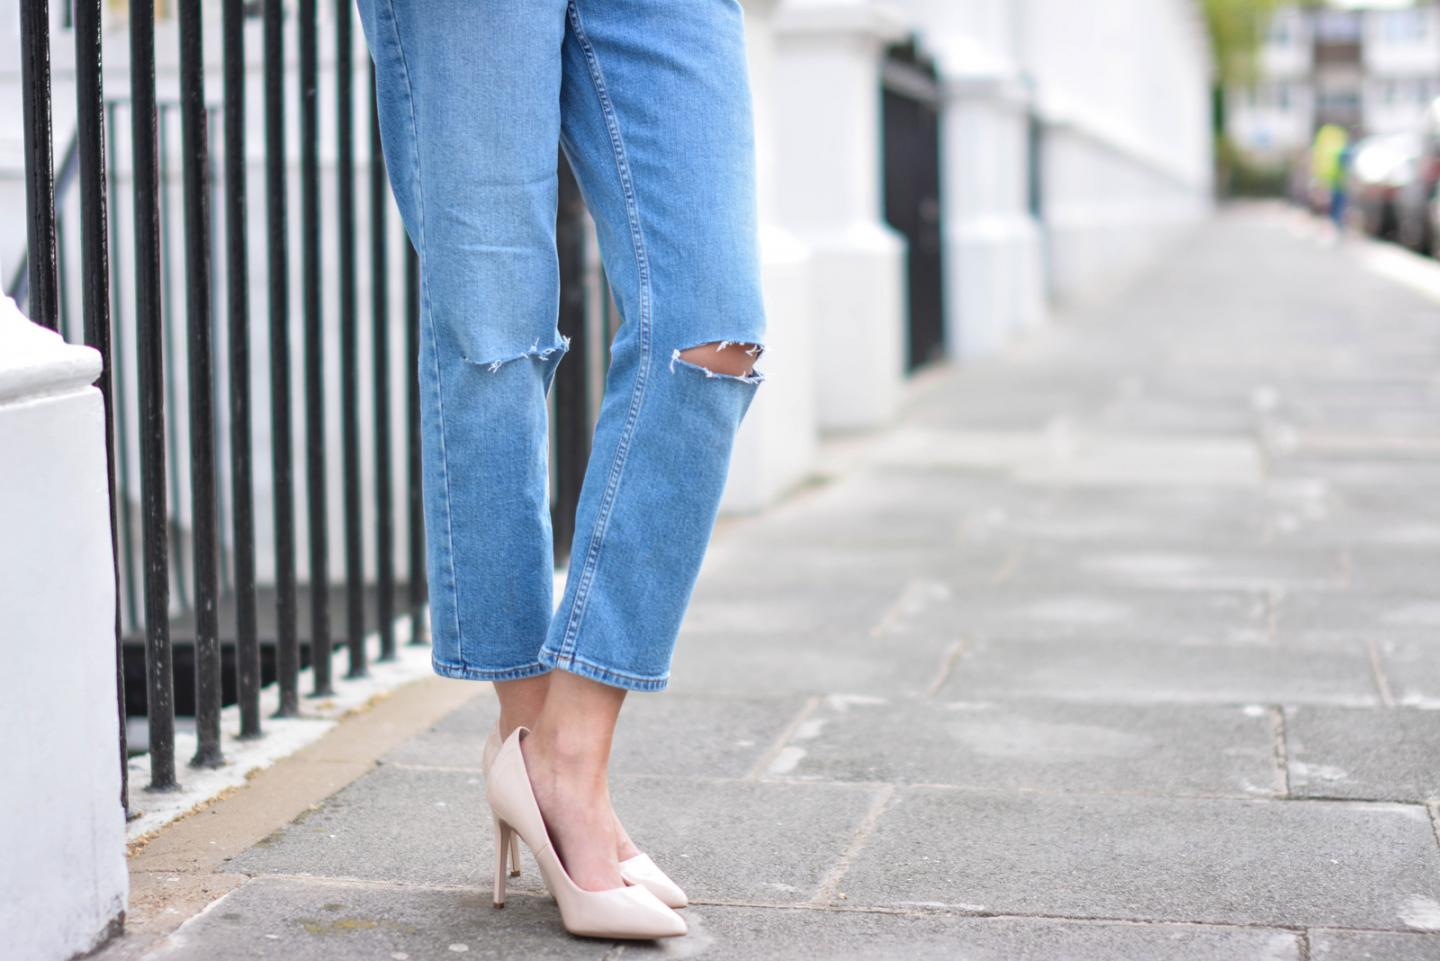 EJSTYLE - Emma Hill wears ASOS Thea girlfriend jeans with ripped knees, nude patent pointed toe court shoes